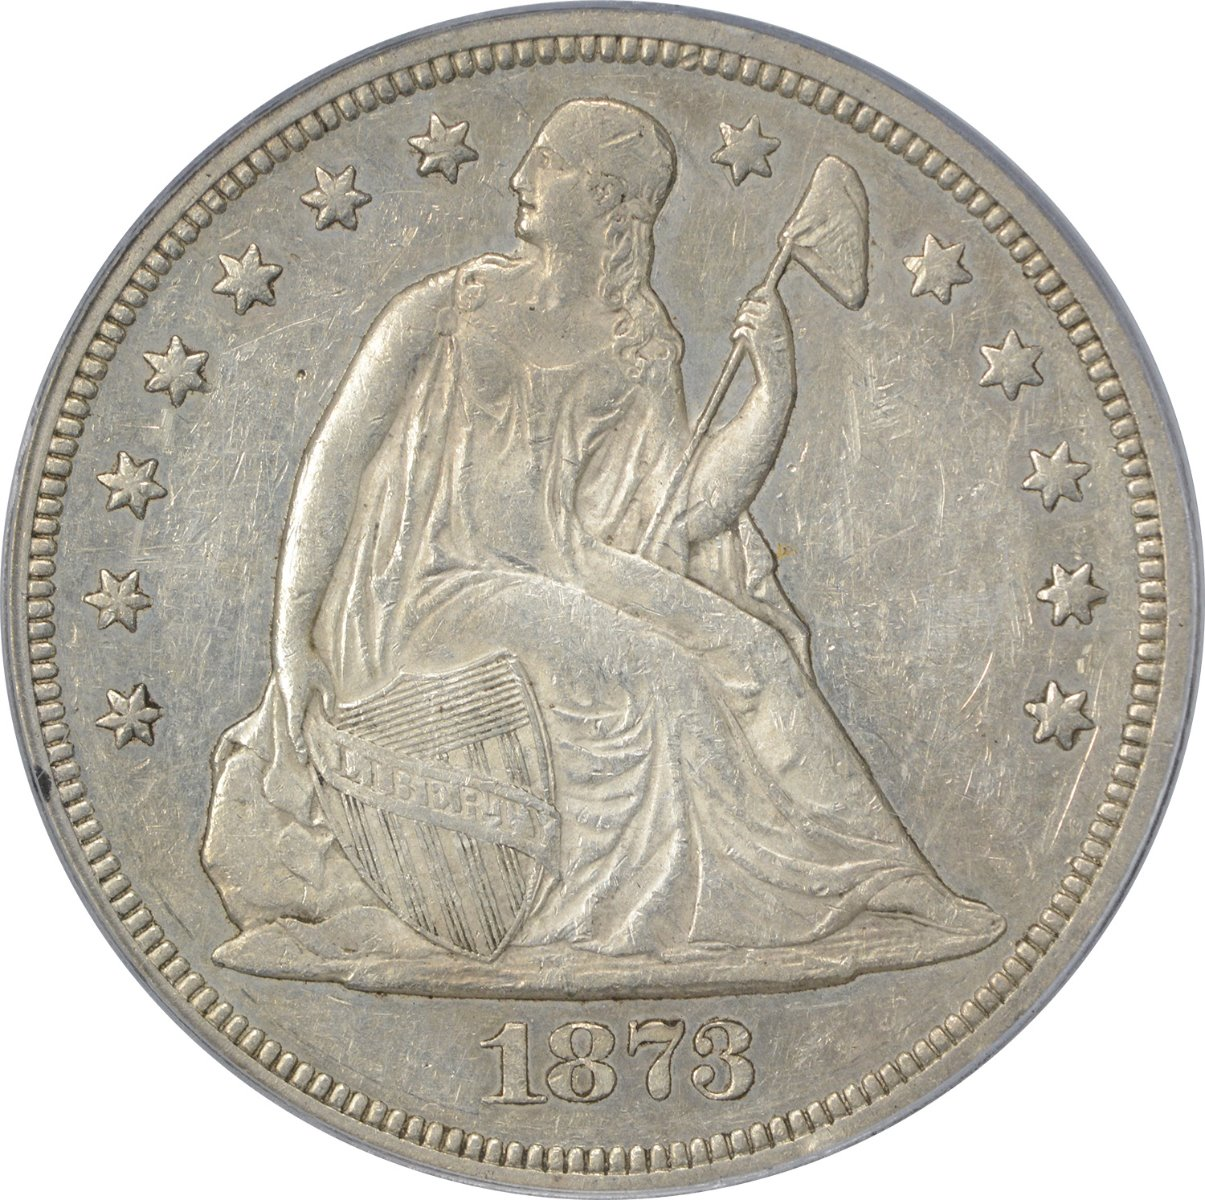 Liberty Seated Silver Dollars